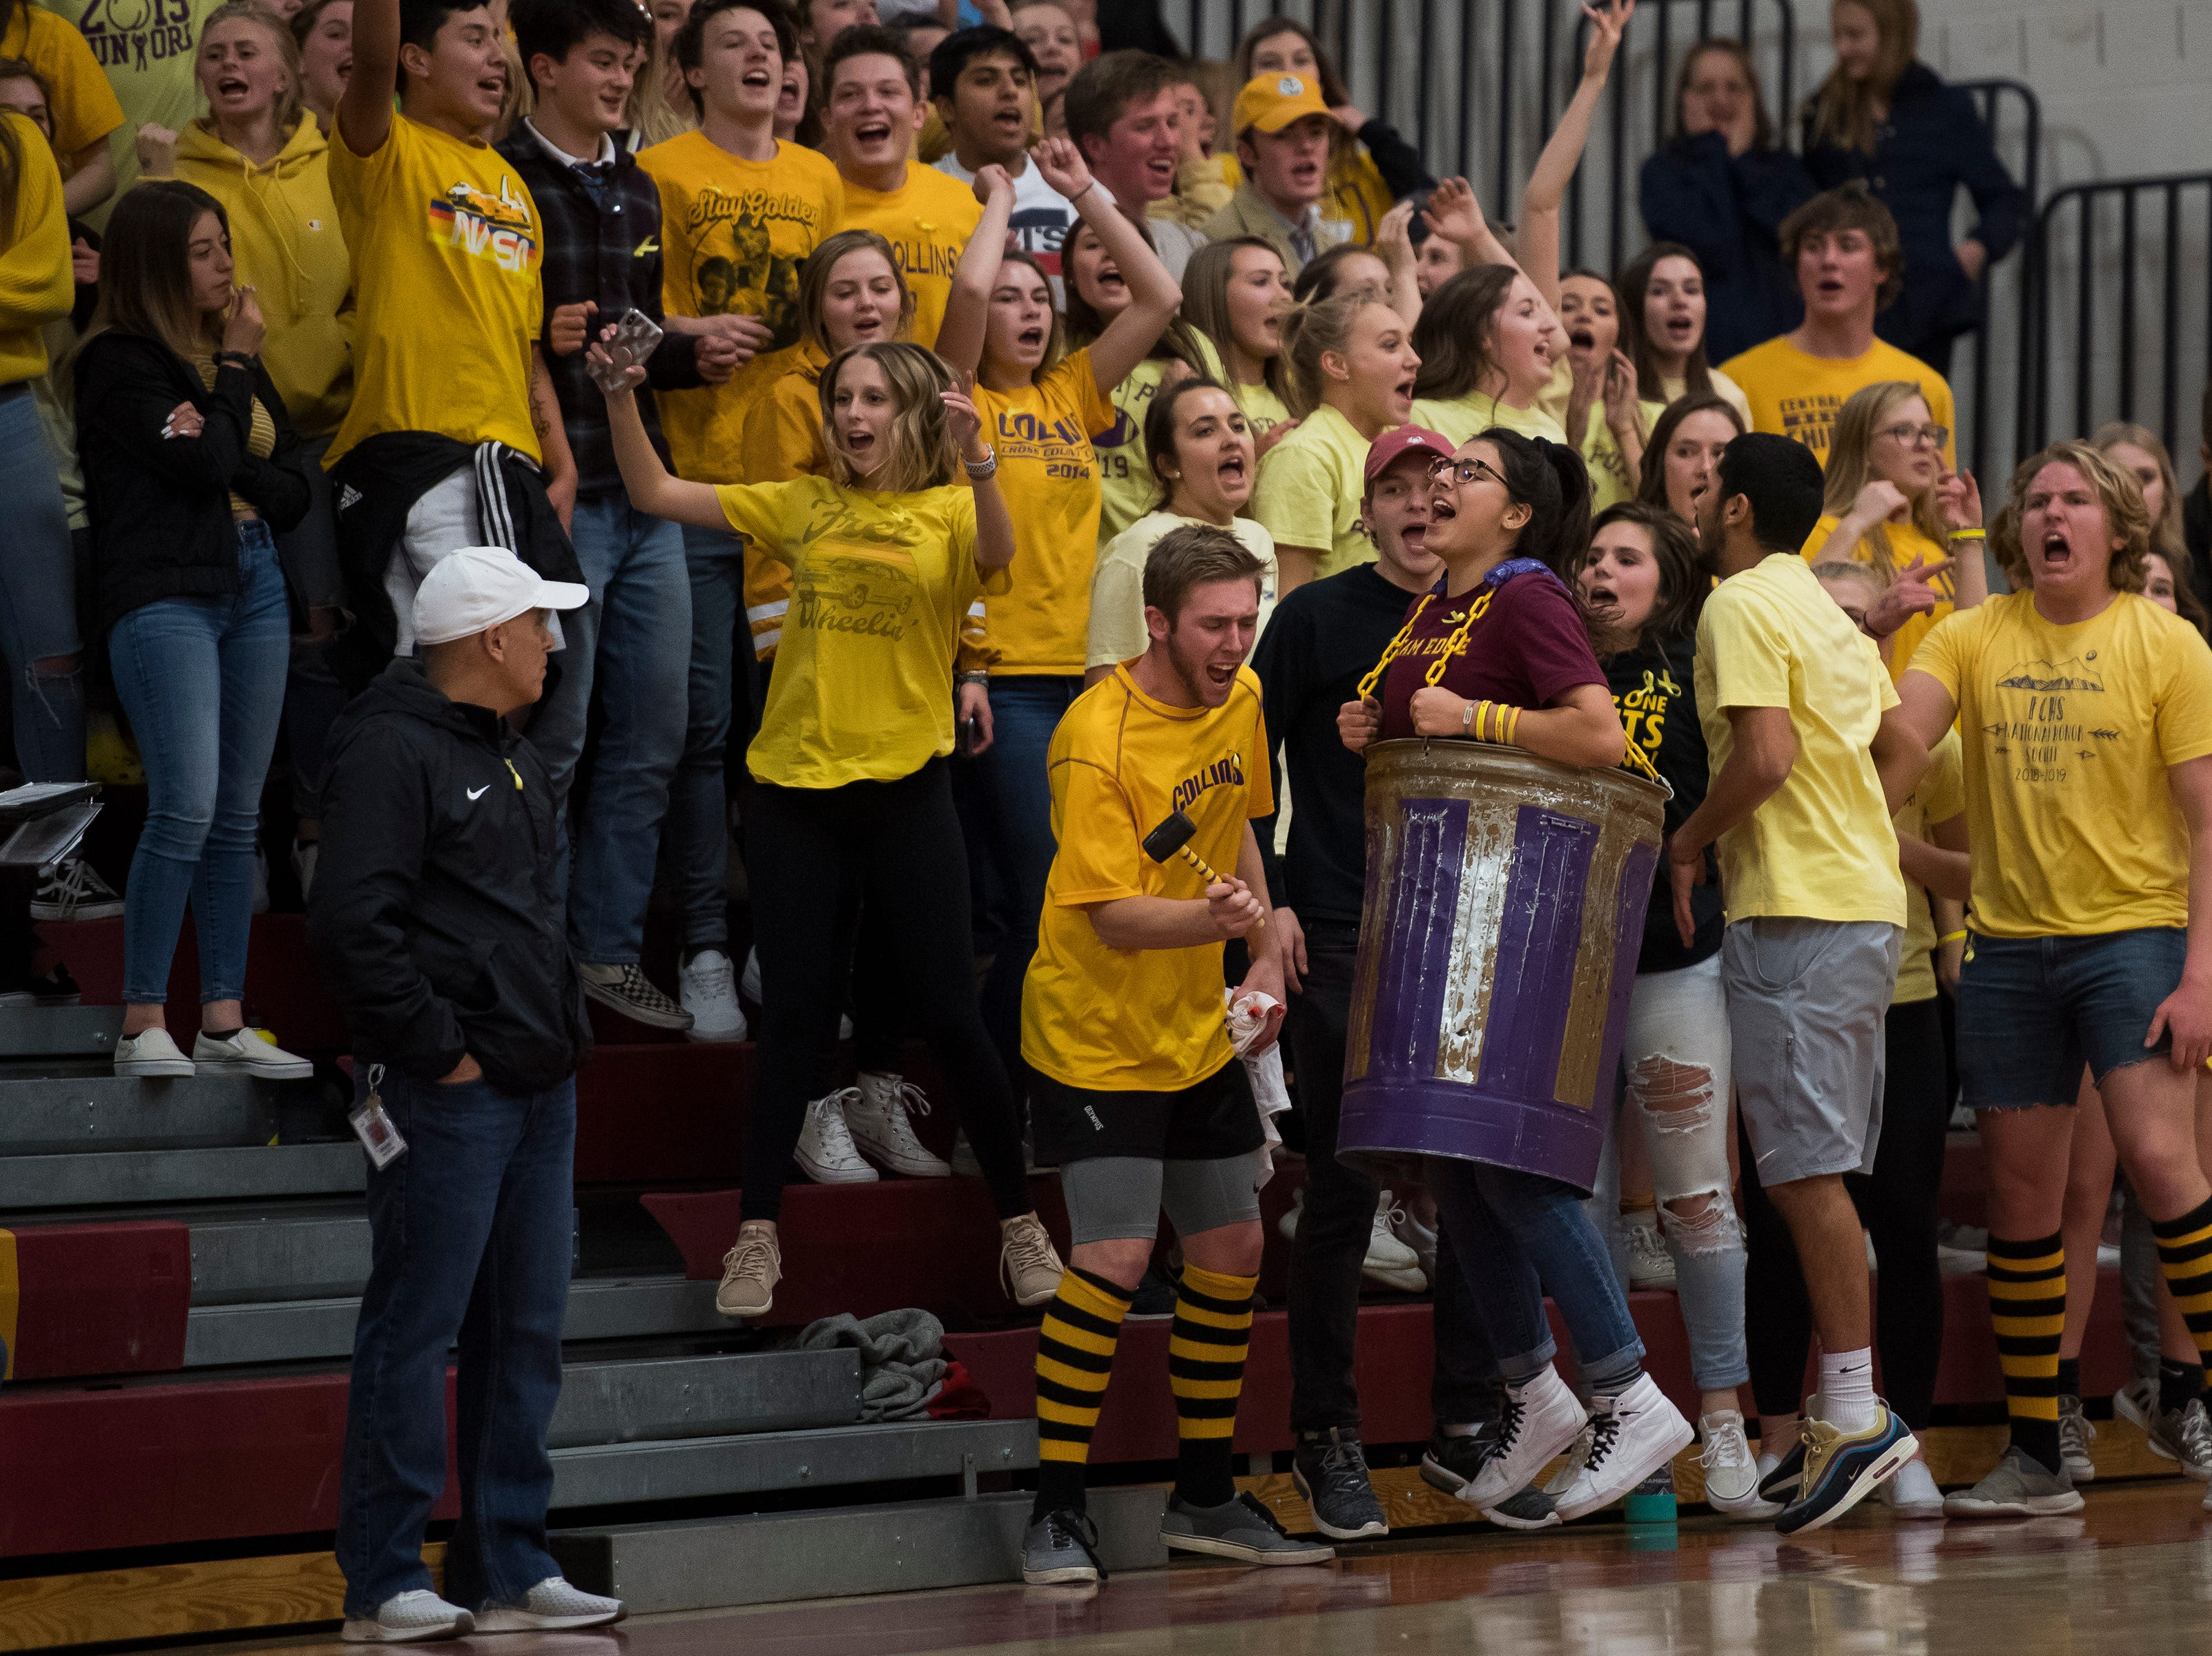 The Fort Collins High School student section chants during a game against rival Rocky Mountain High School on Friday, Jan. 18, 2019, at Rocky Mountain High School in Fort Collins, Colo.